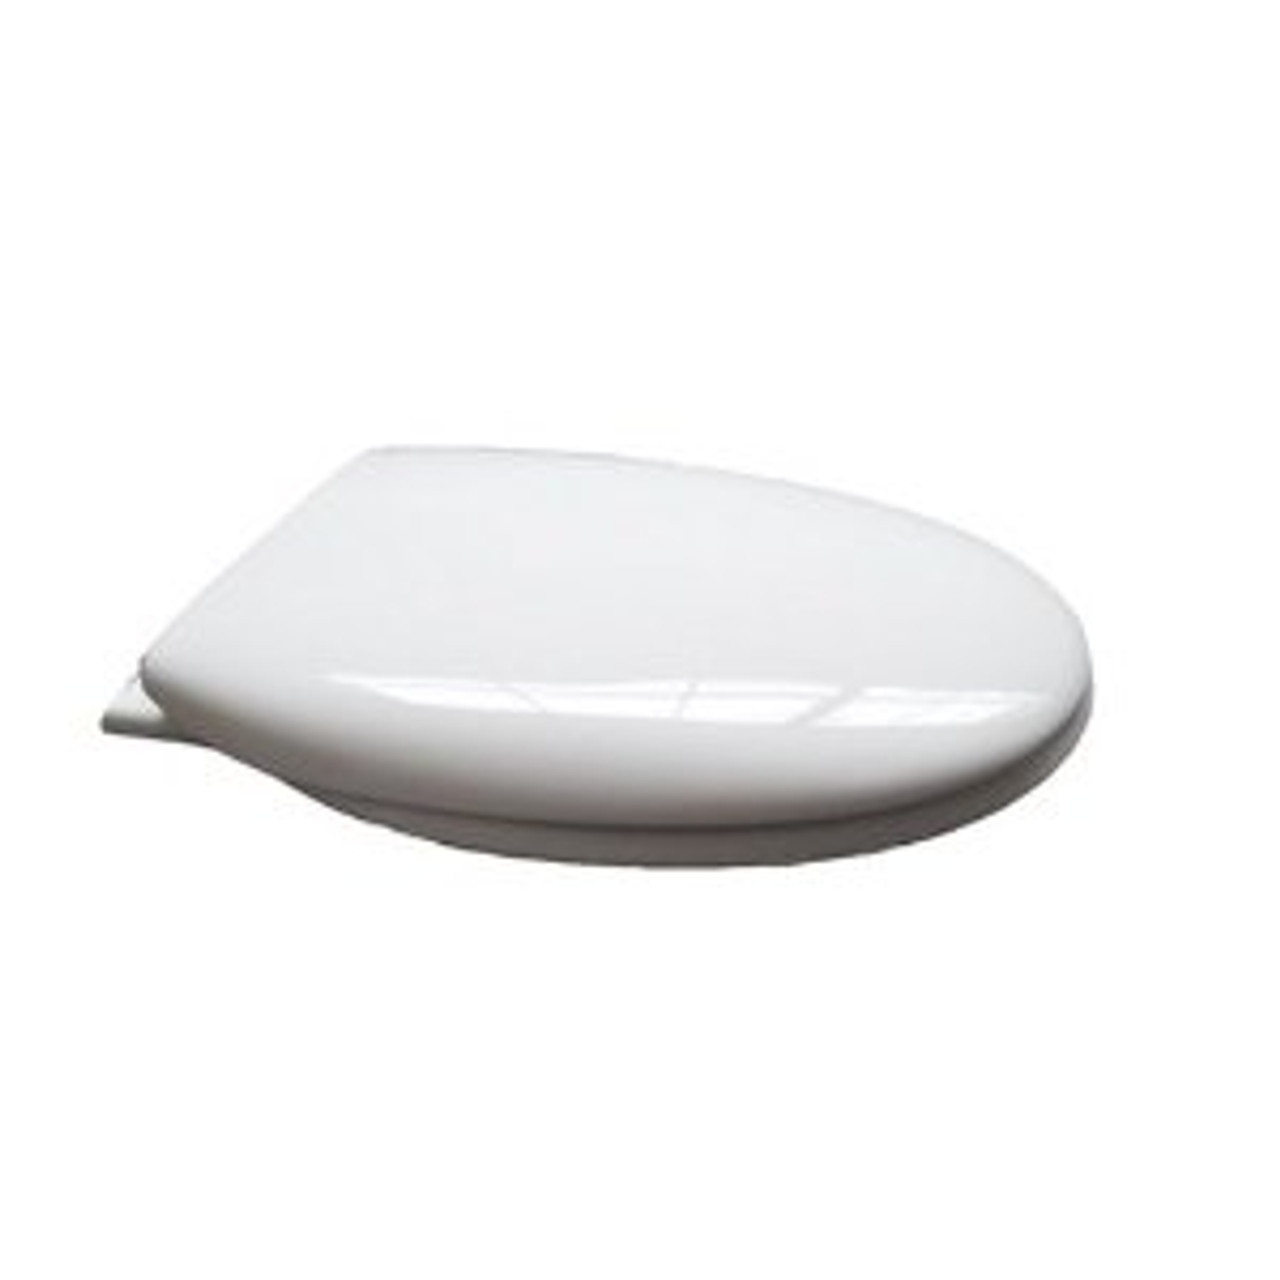 Croydex Slow Close Toilet Seat